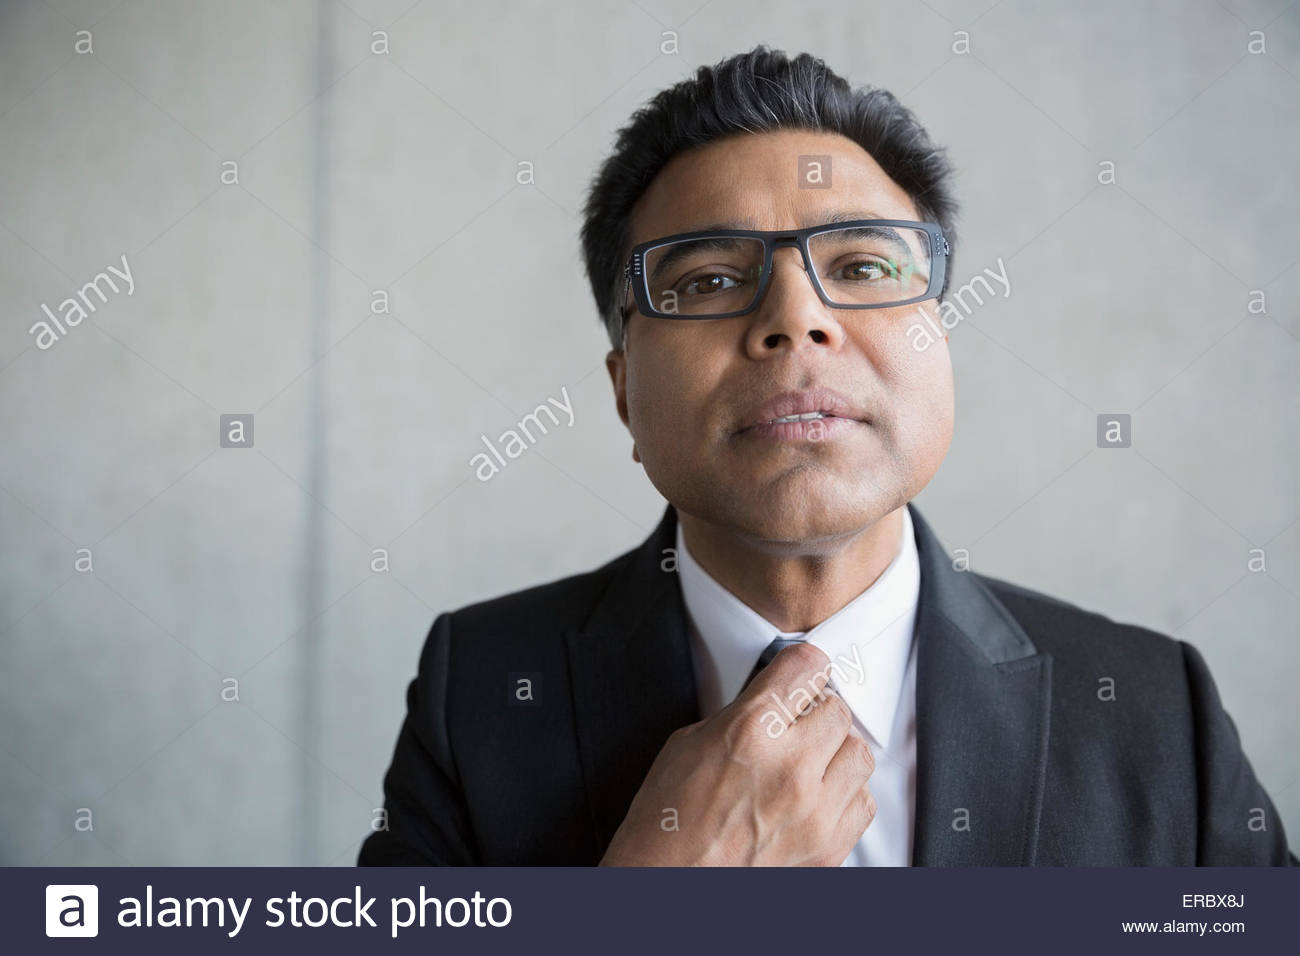 Portrait businessman with black hair adjusting tie - Stock Image